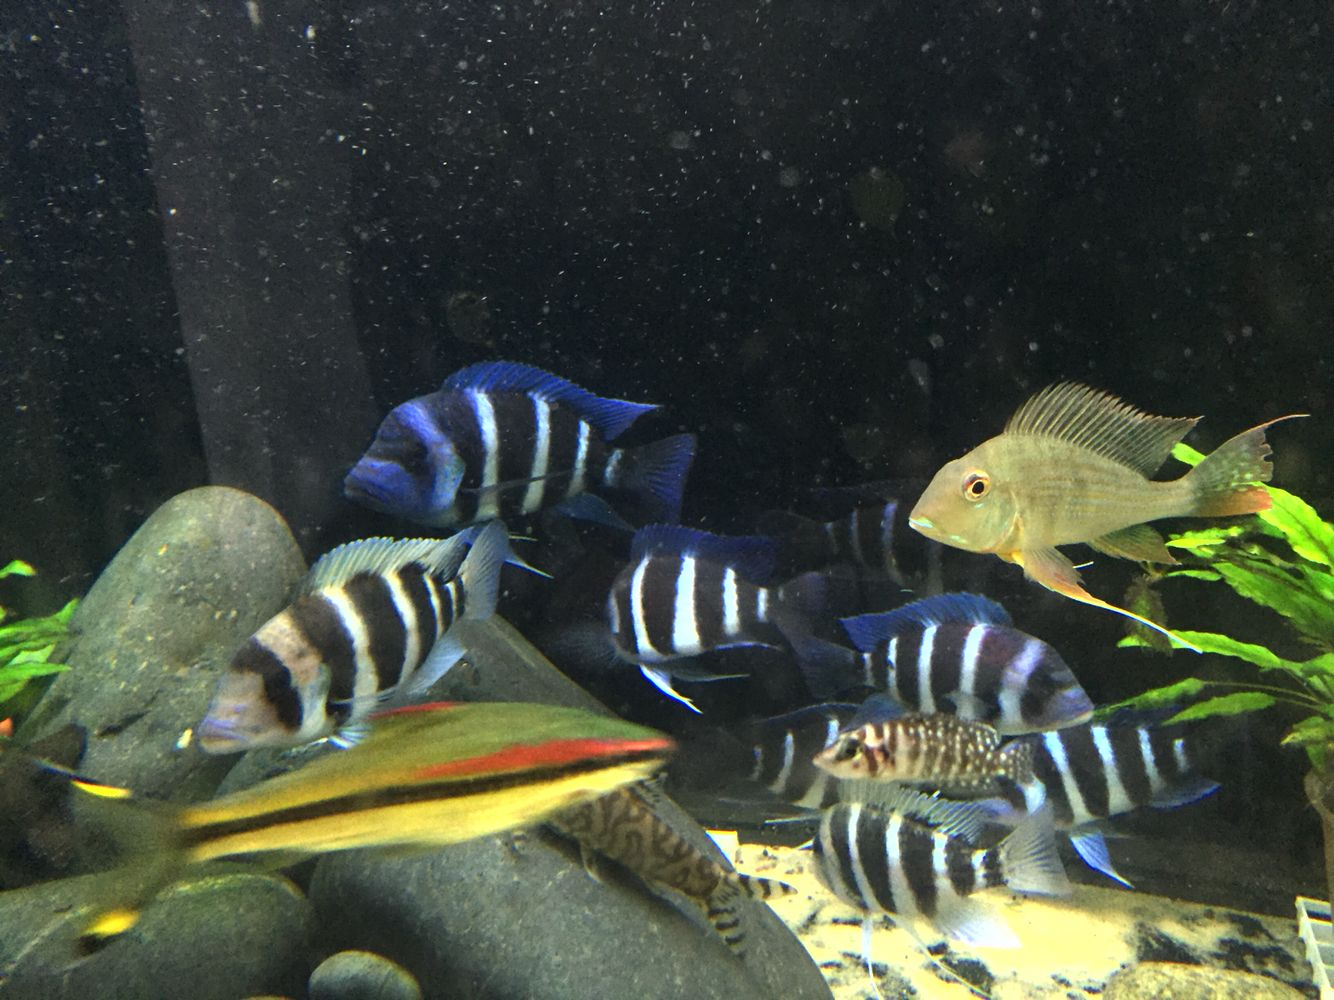 Moba burundi geophagus Aquarium fish for sale, Aquarium